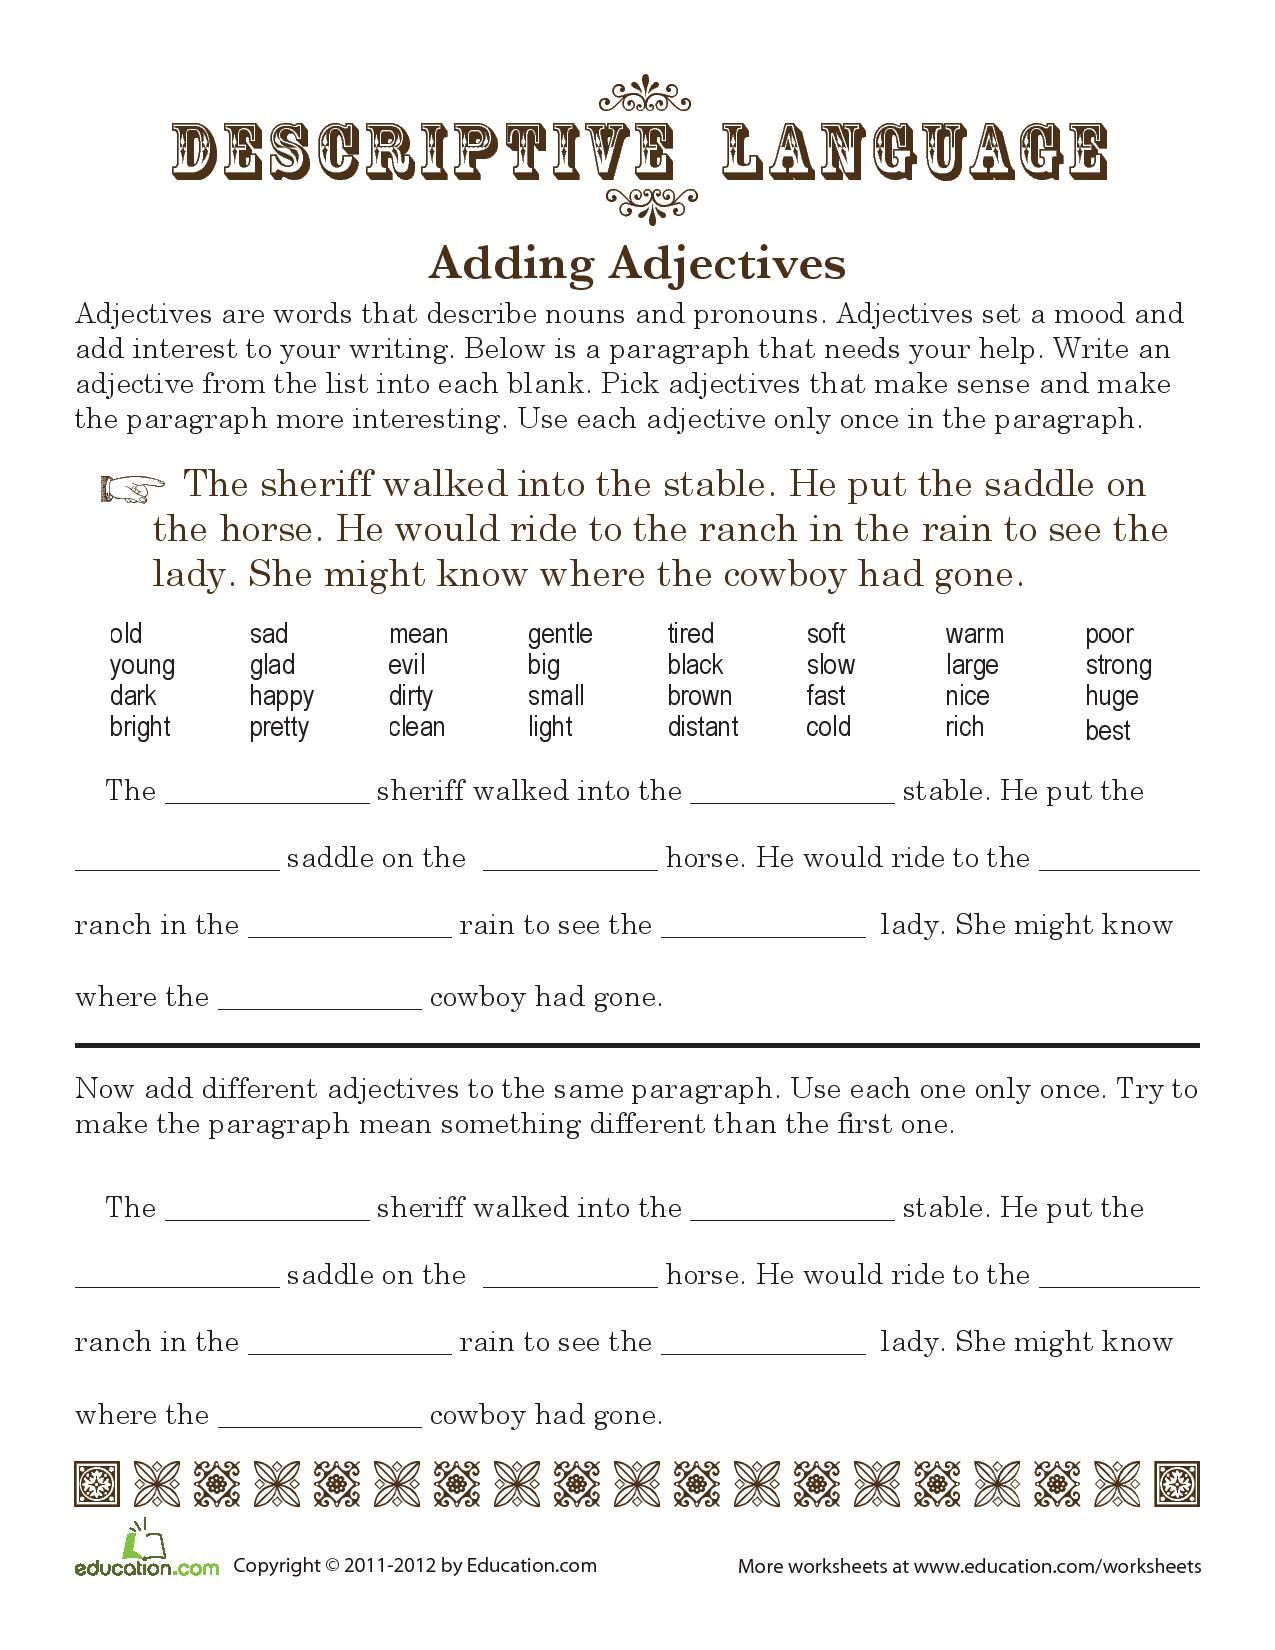 small resolution of Time to saddle up some adjectives! Descriptive language adds interest to  writing for fifth graders.   Adjectives